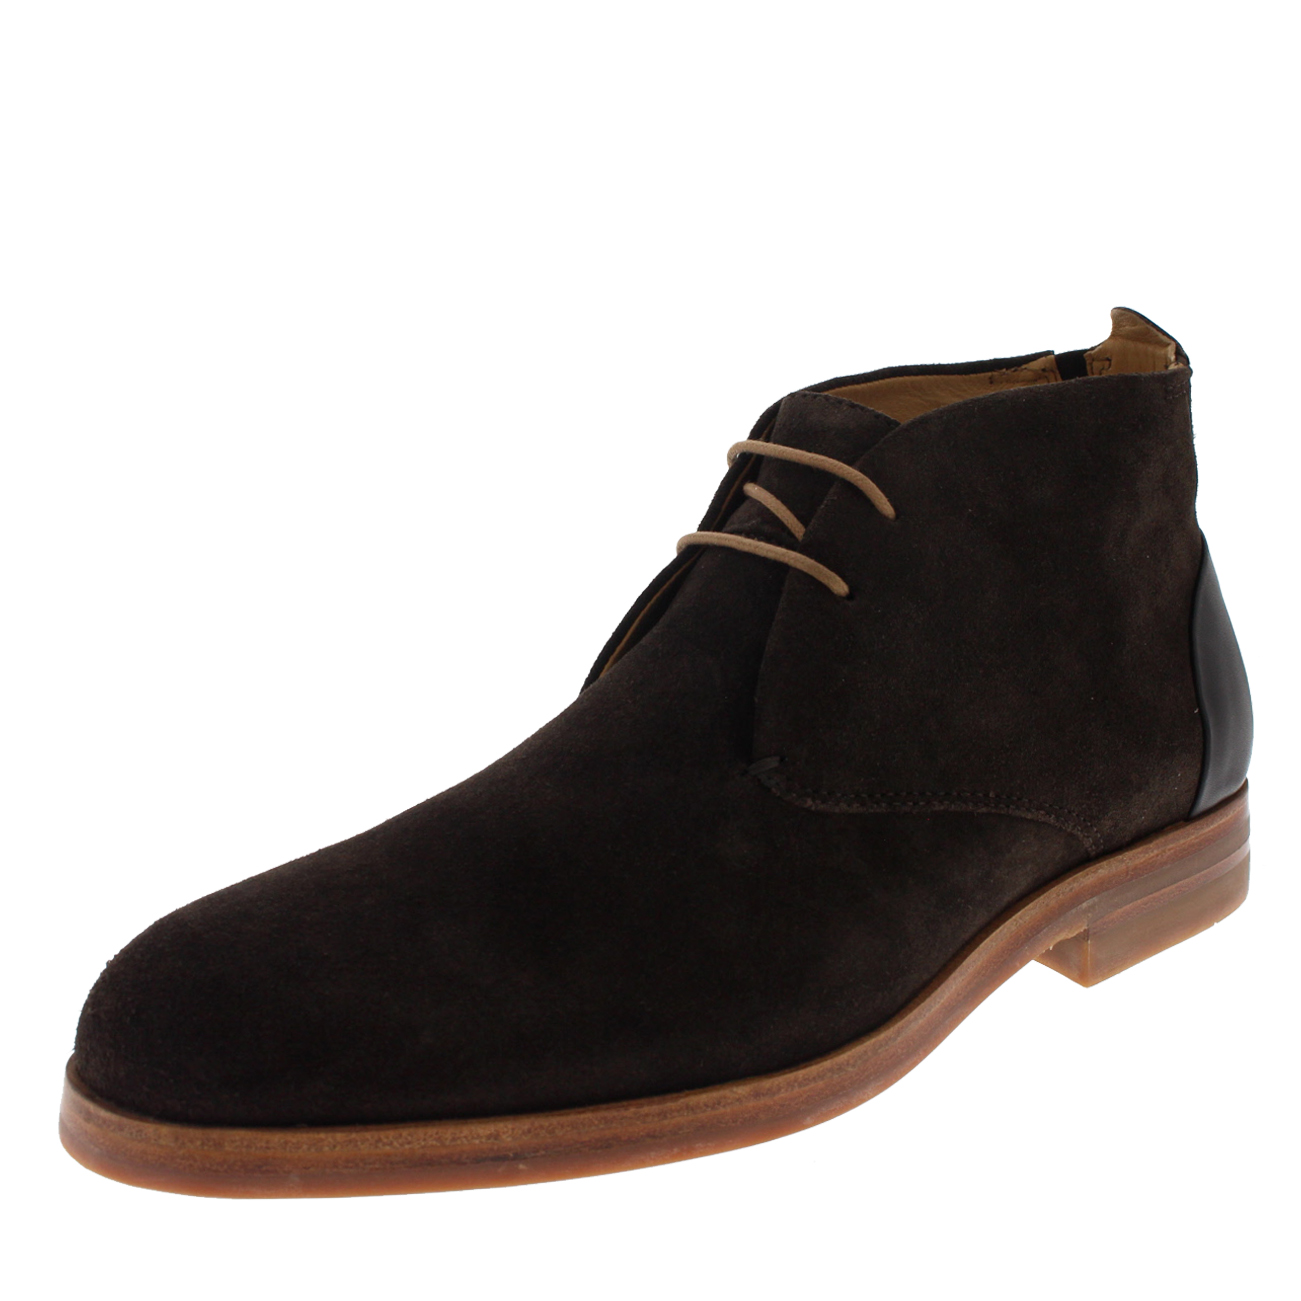 Mens H By Hudson Matteo Suede Smart Casual Office Chukka Boots Shoes UK 6-12 f8c53faa7